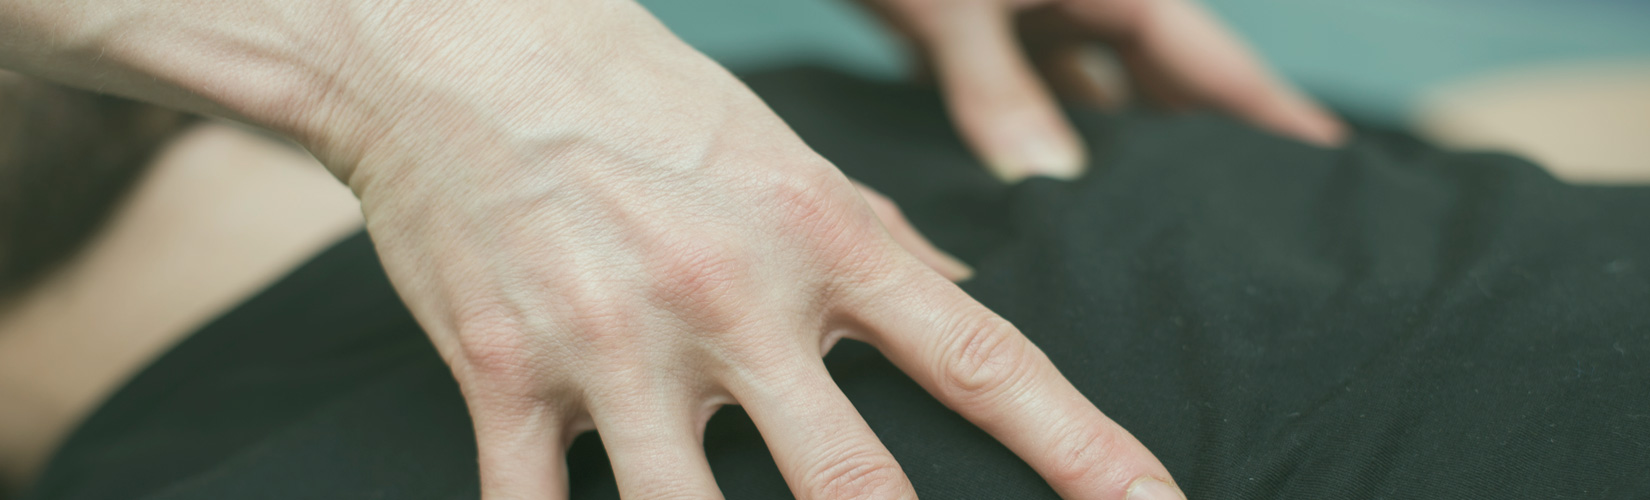 hands close up acupressure back